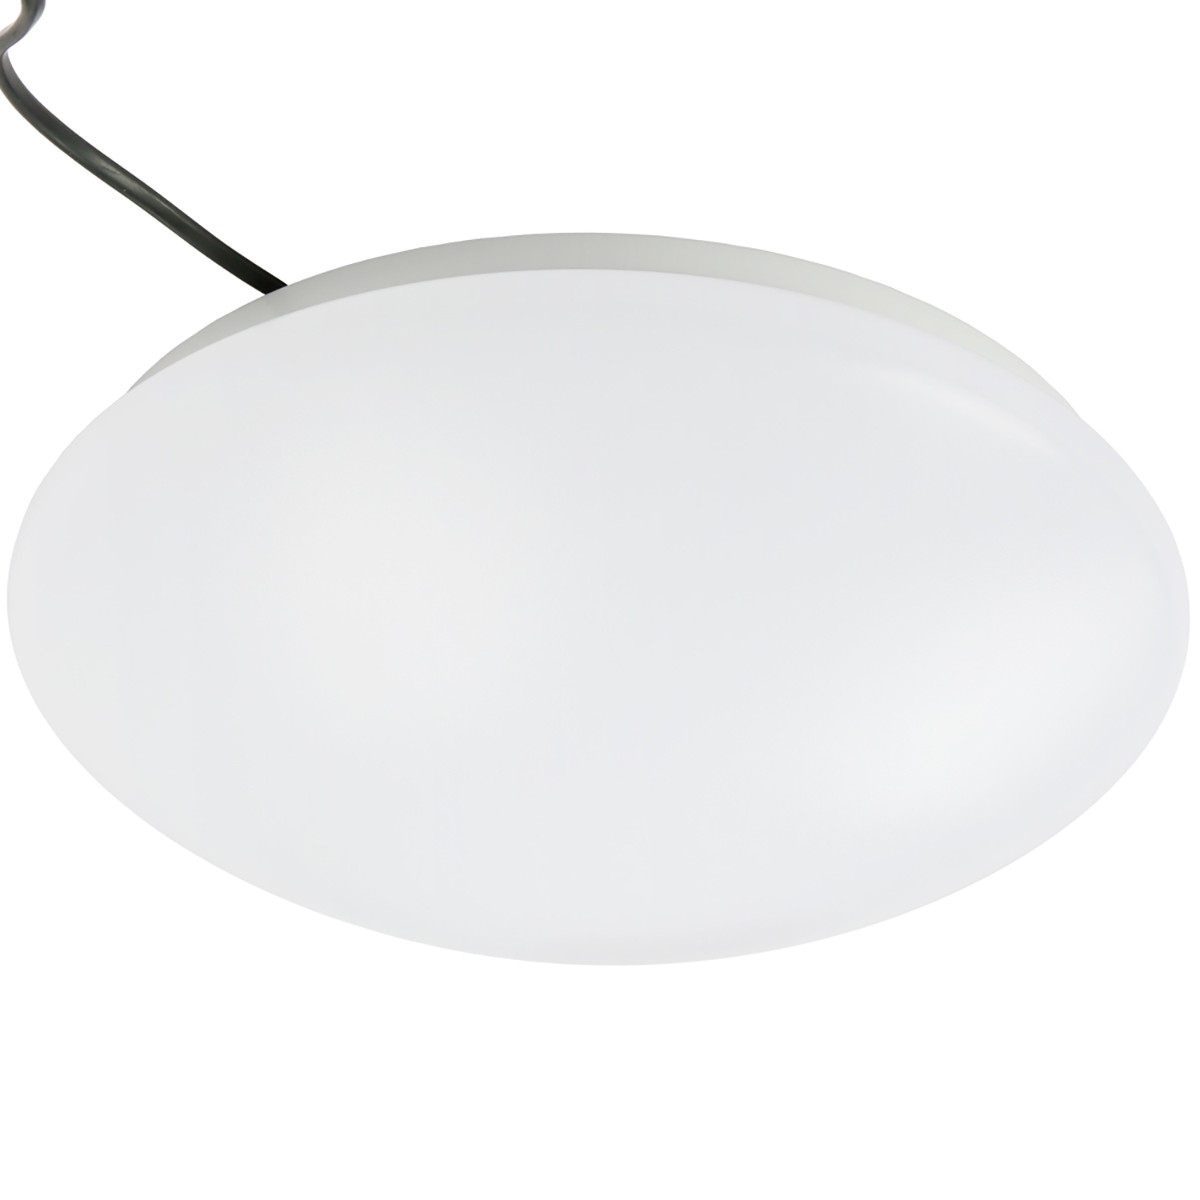 18W 14.1 inch Modern LED Flush Mount Ceiling Light Fixture for Any Room Round Acrylic Shade White Finish Mushroom Shape and CCT changable